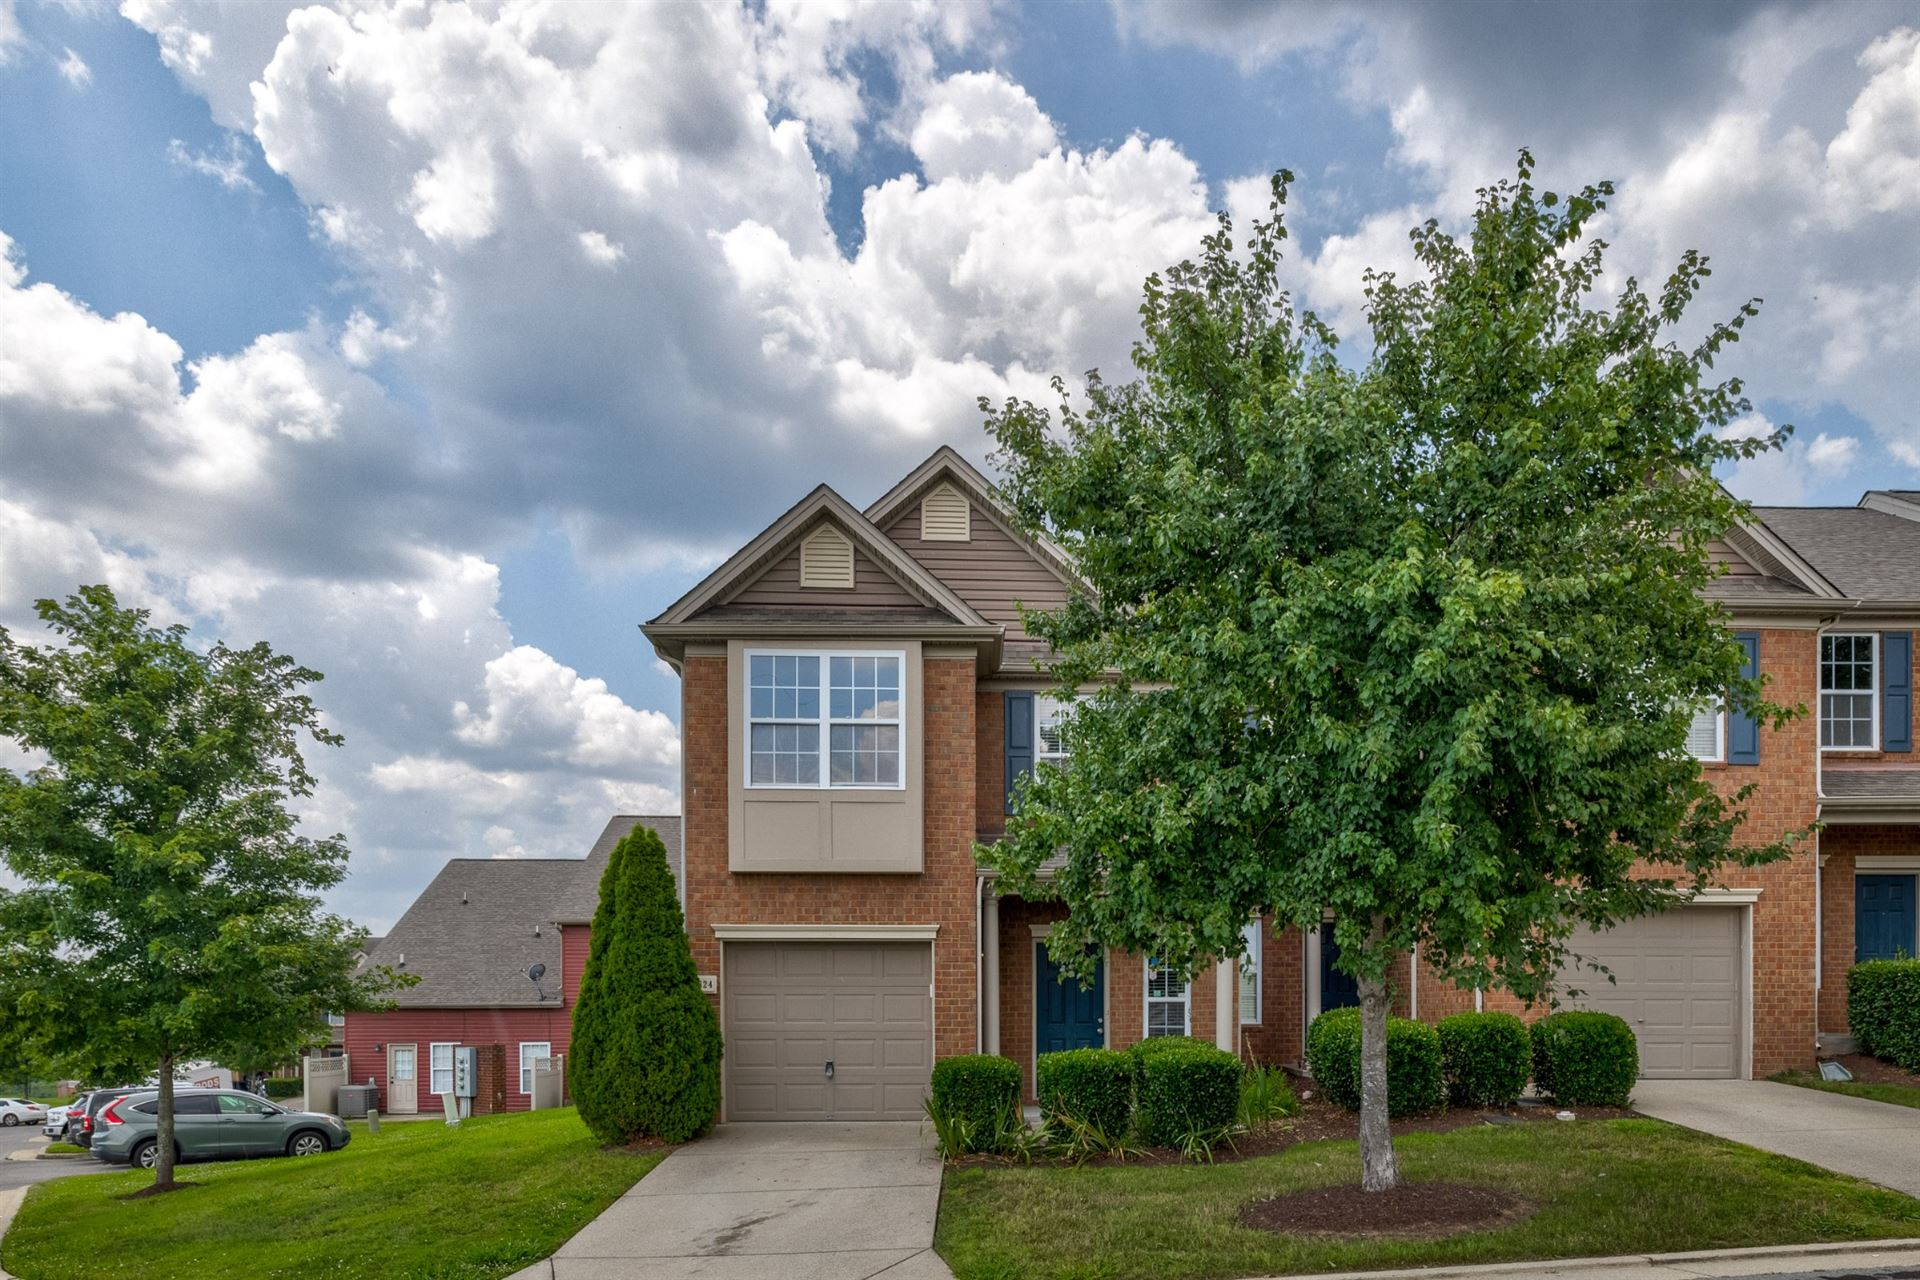 8824 Dolcetto Grv #94, Brentwood, TN 37027 - MLS#: 2275920